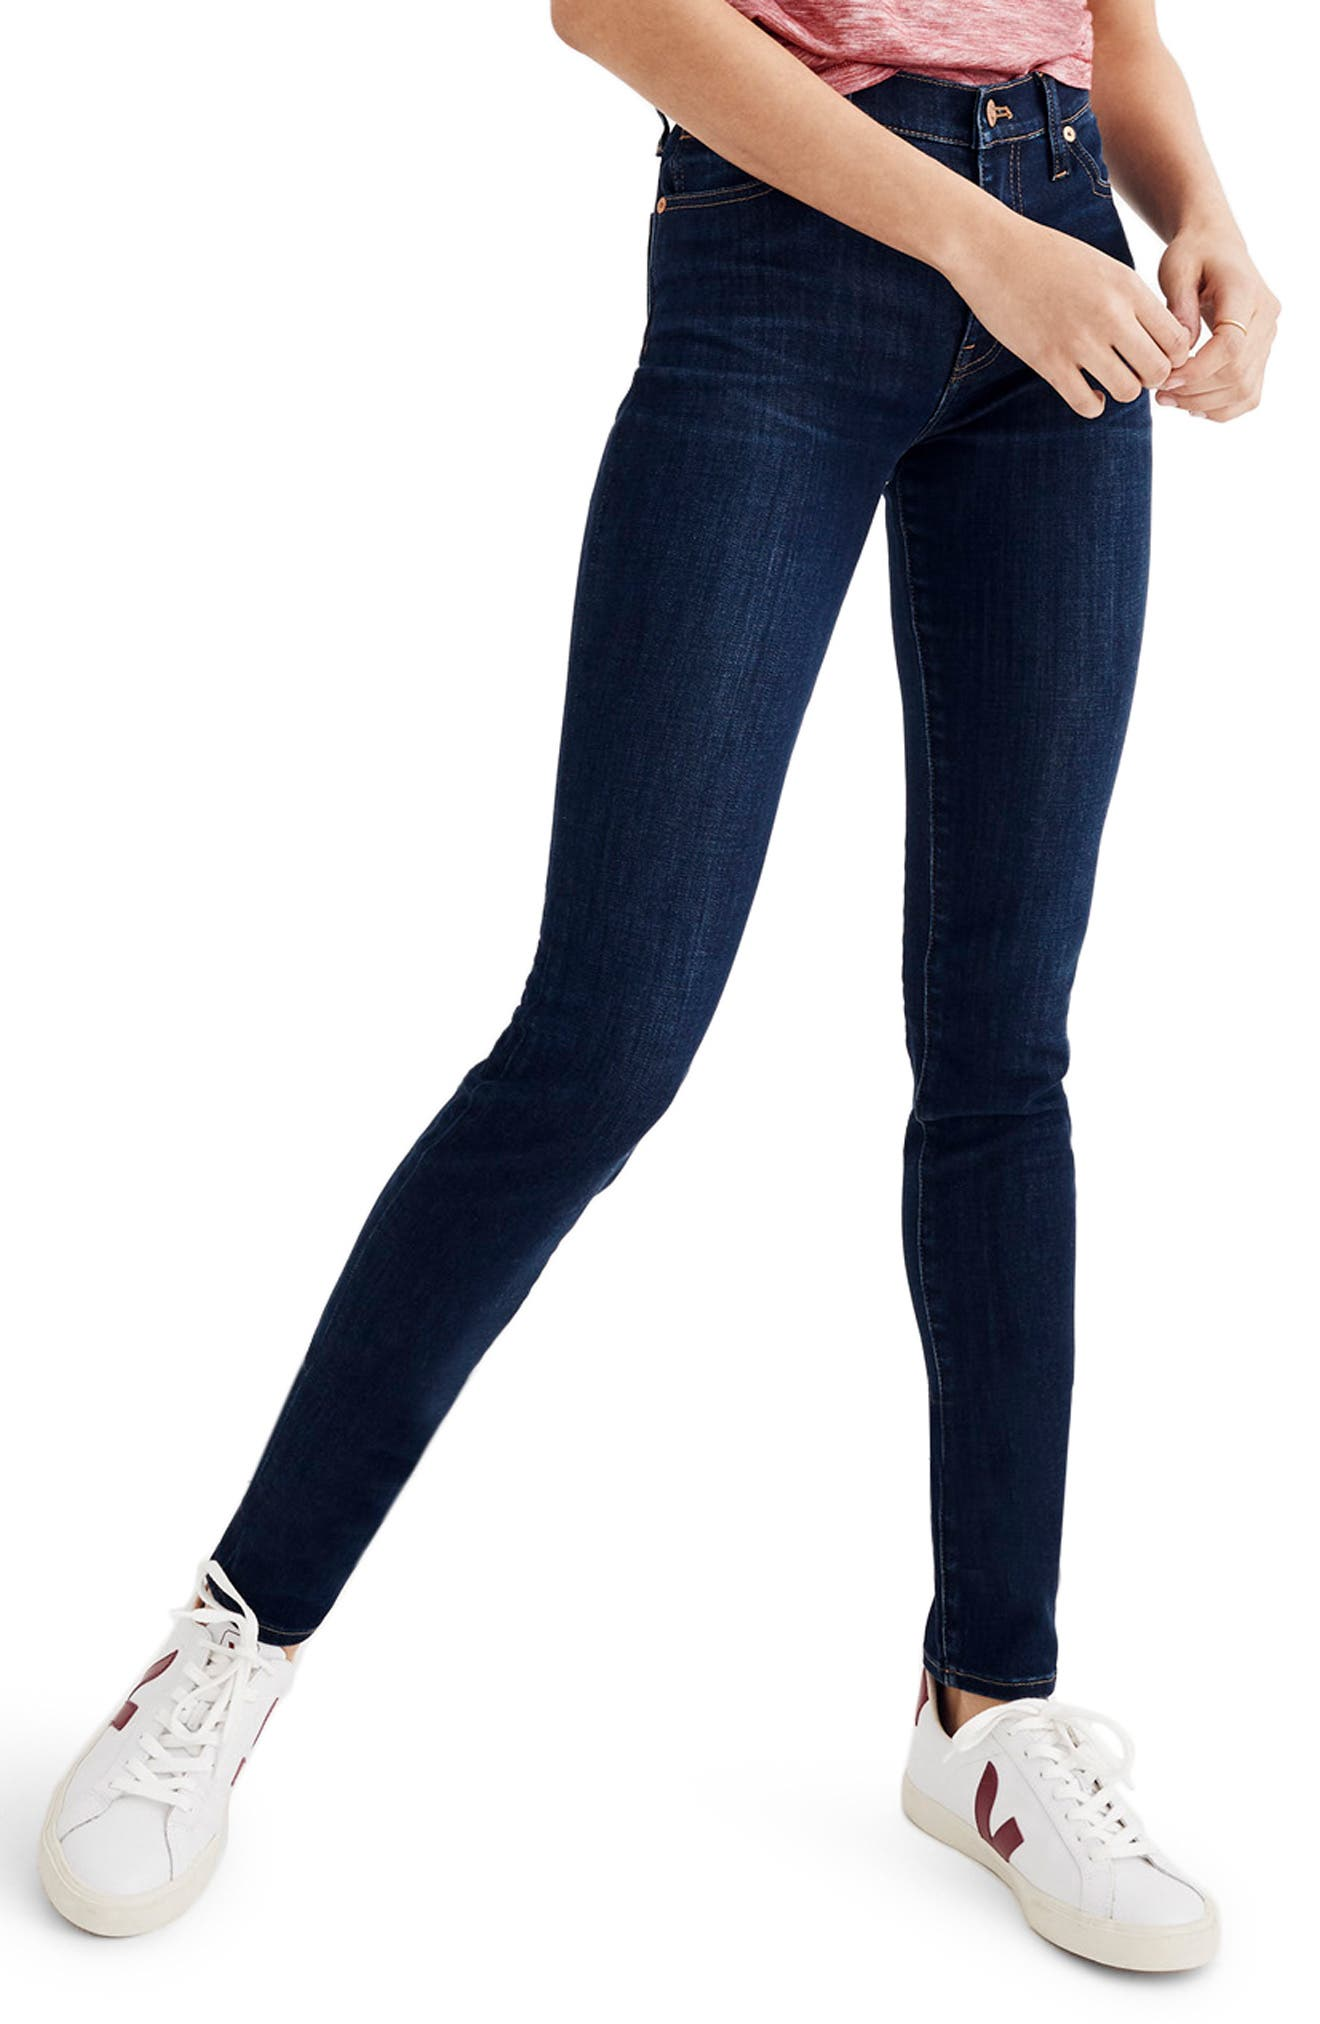 MADEWELL, 9-Inch High Rise Skinny Jeans, Main thumbnail 1, color, LARKSPUR